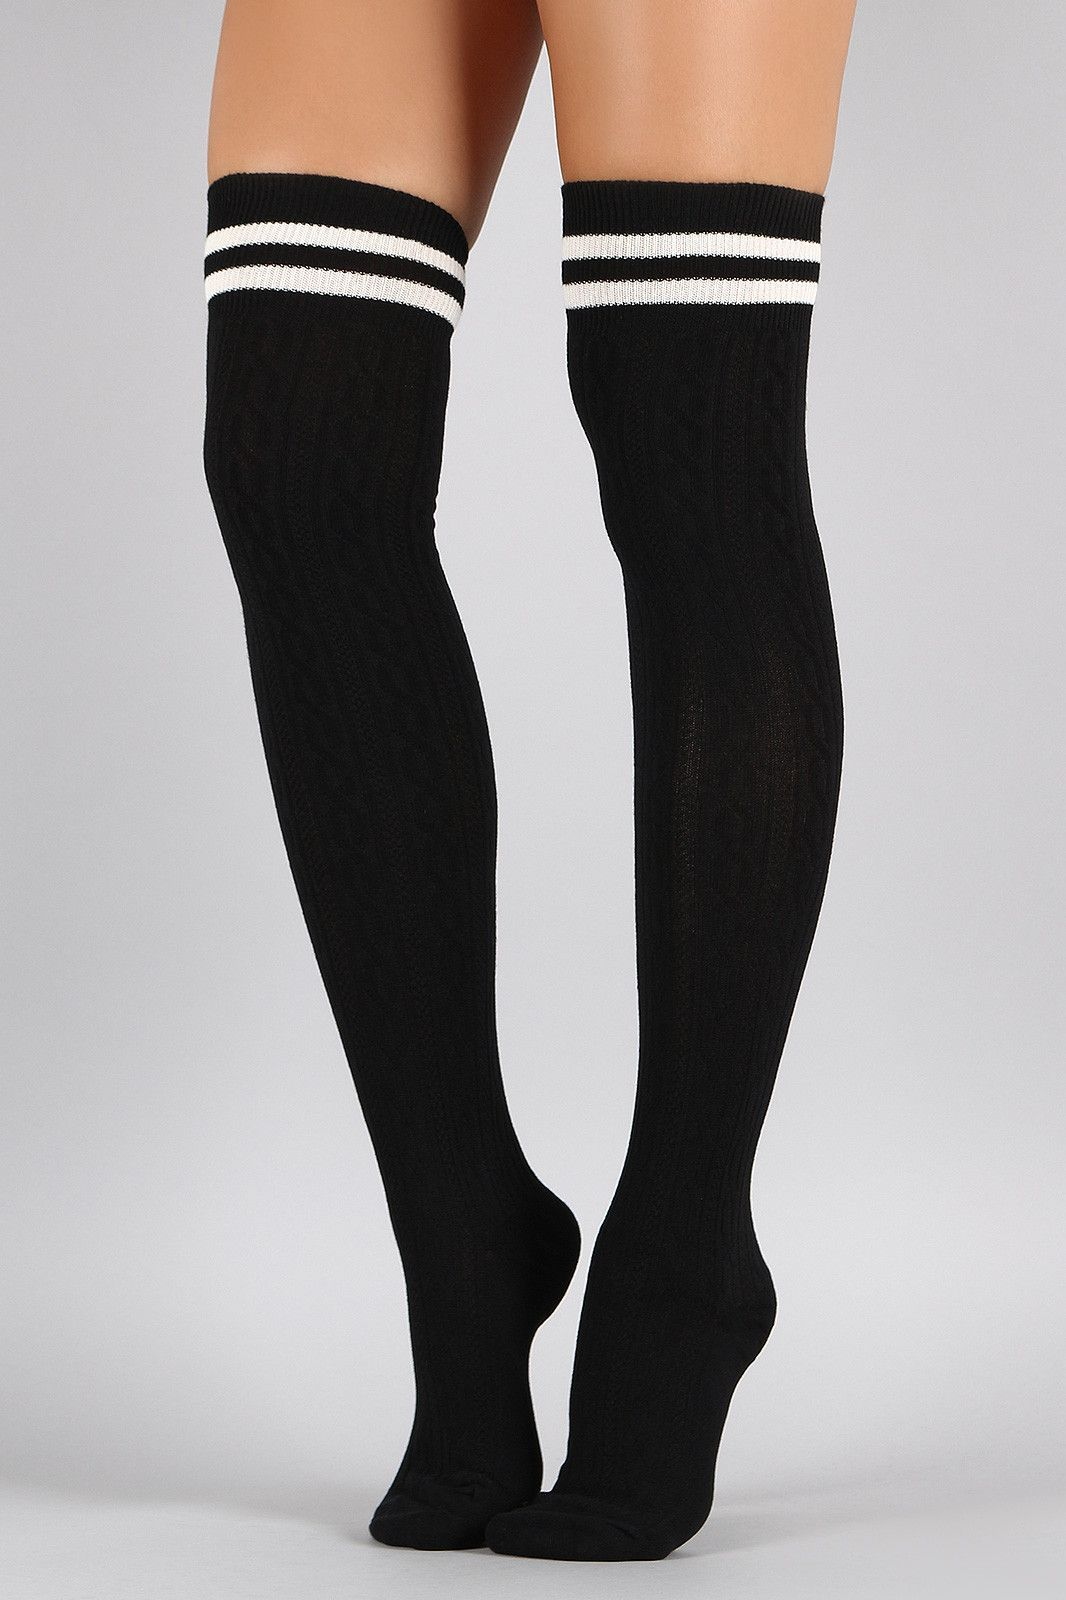 Thigh-high socks are the perfect footwear choice when you're looking to cover a bit more skin than with a pair of knee highs, but don't want to wear full tights. The fact that they reveal just the right amount of leg makes them fun and cheeky while still an appropriate choice .